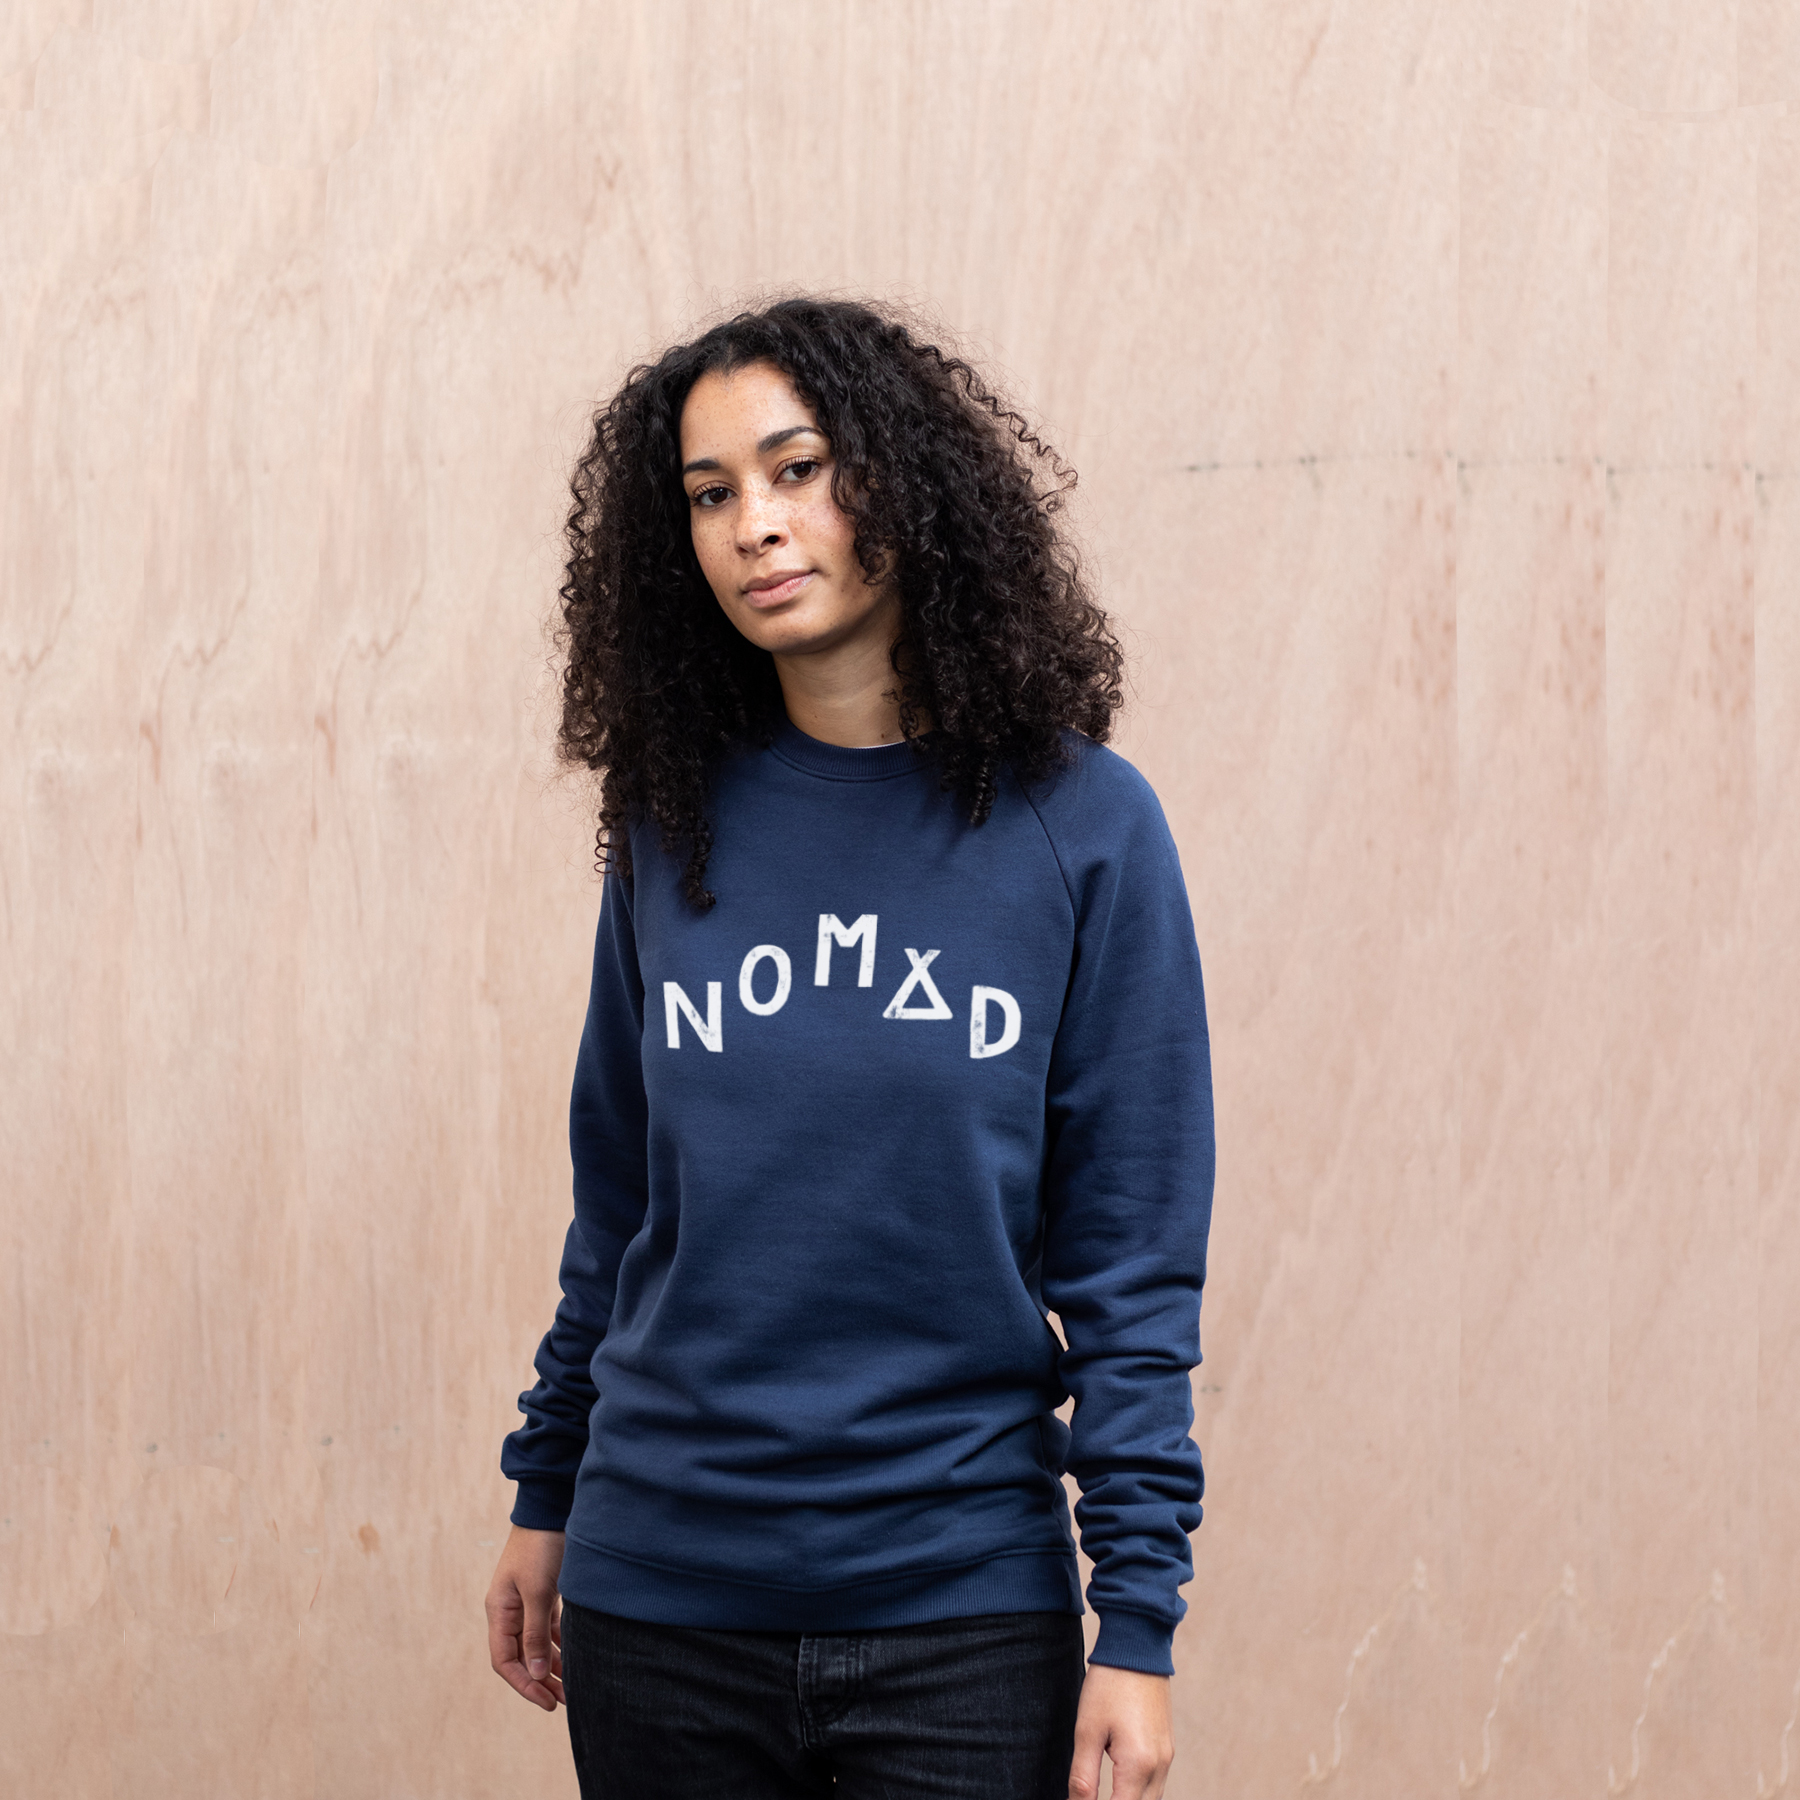 Nomad-organic-navy-sweater-womens-The-Level-Collective.jpg